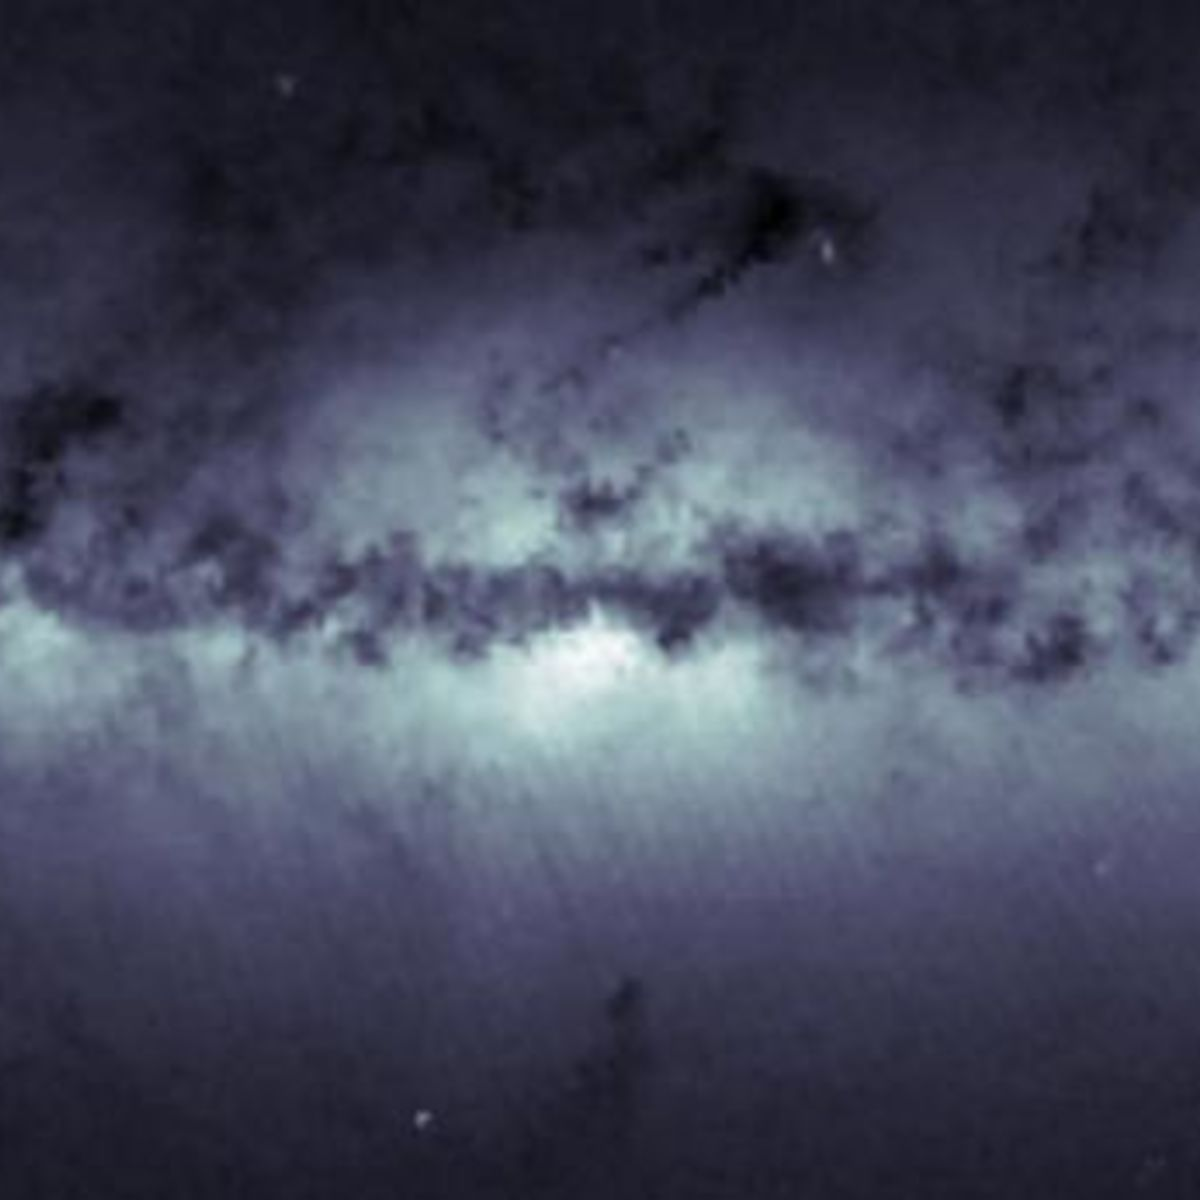 gaia_milkywaymap_590.jpg.CROP.rectangle-large_0.jpg